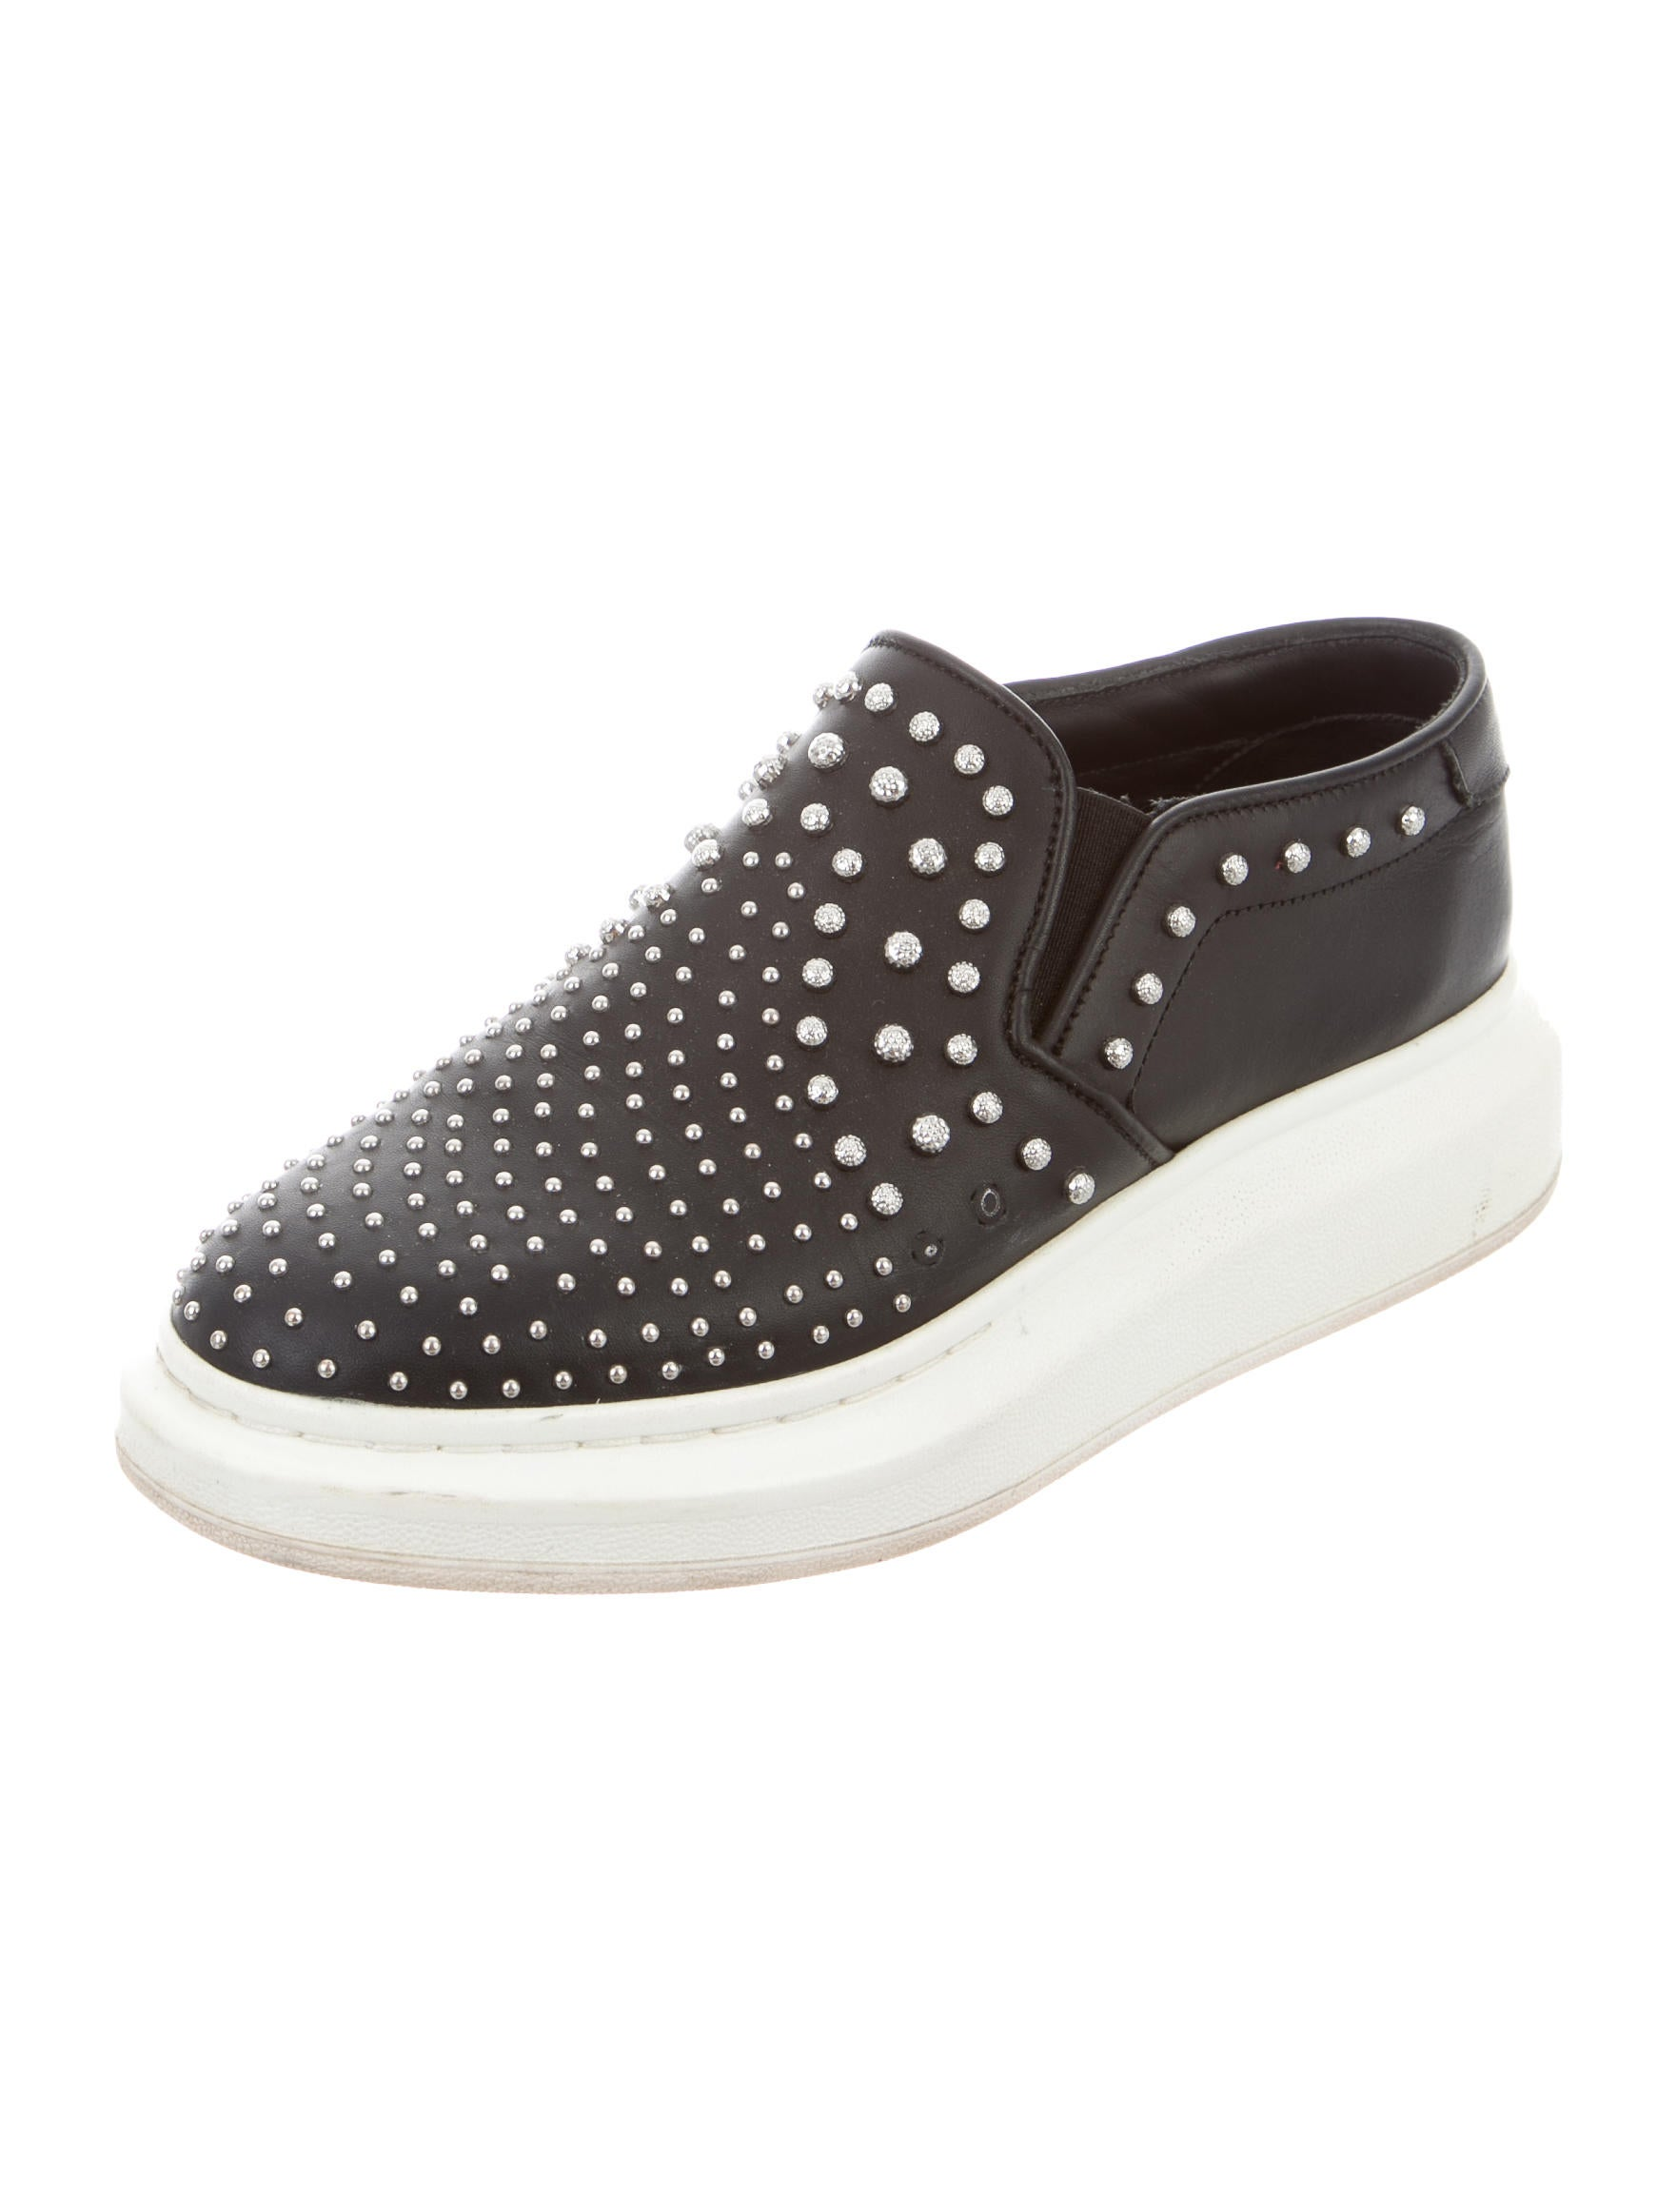 mcqueen studded slip on sneakers shoes